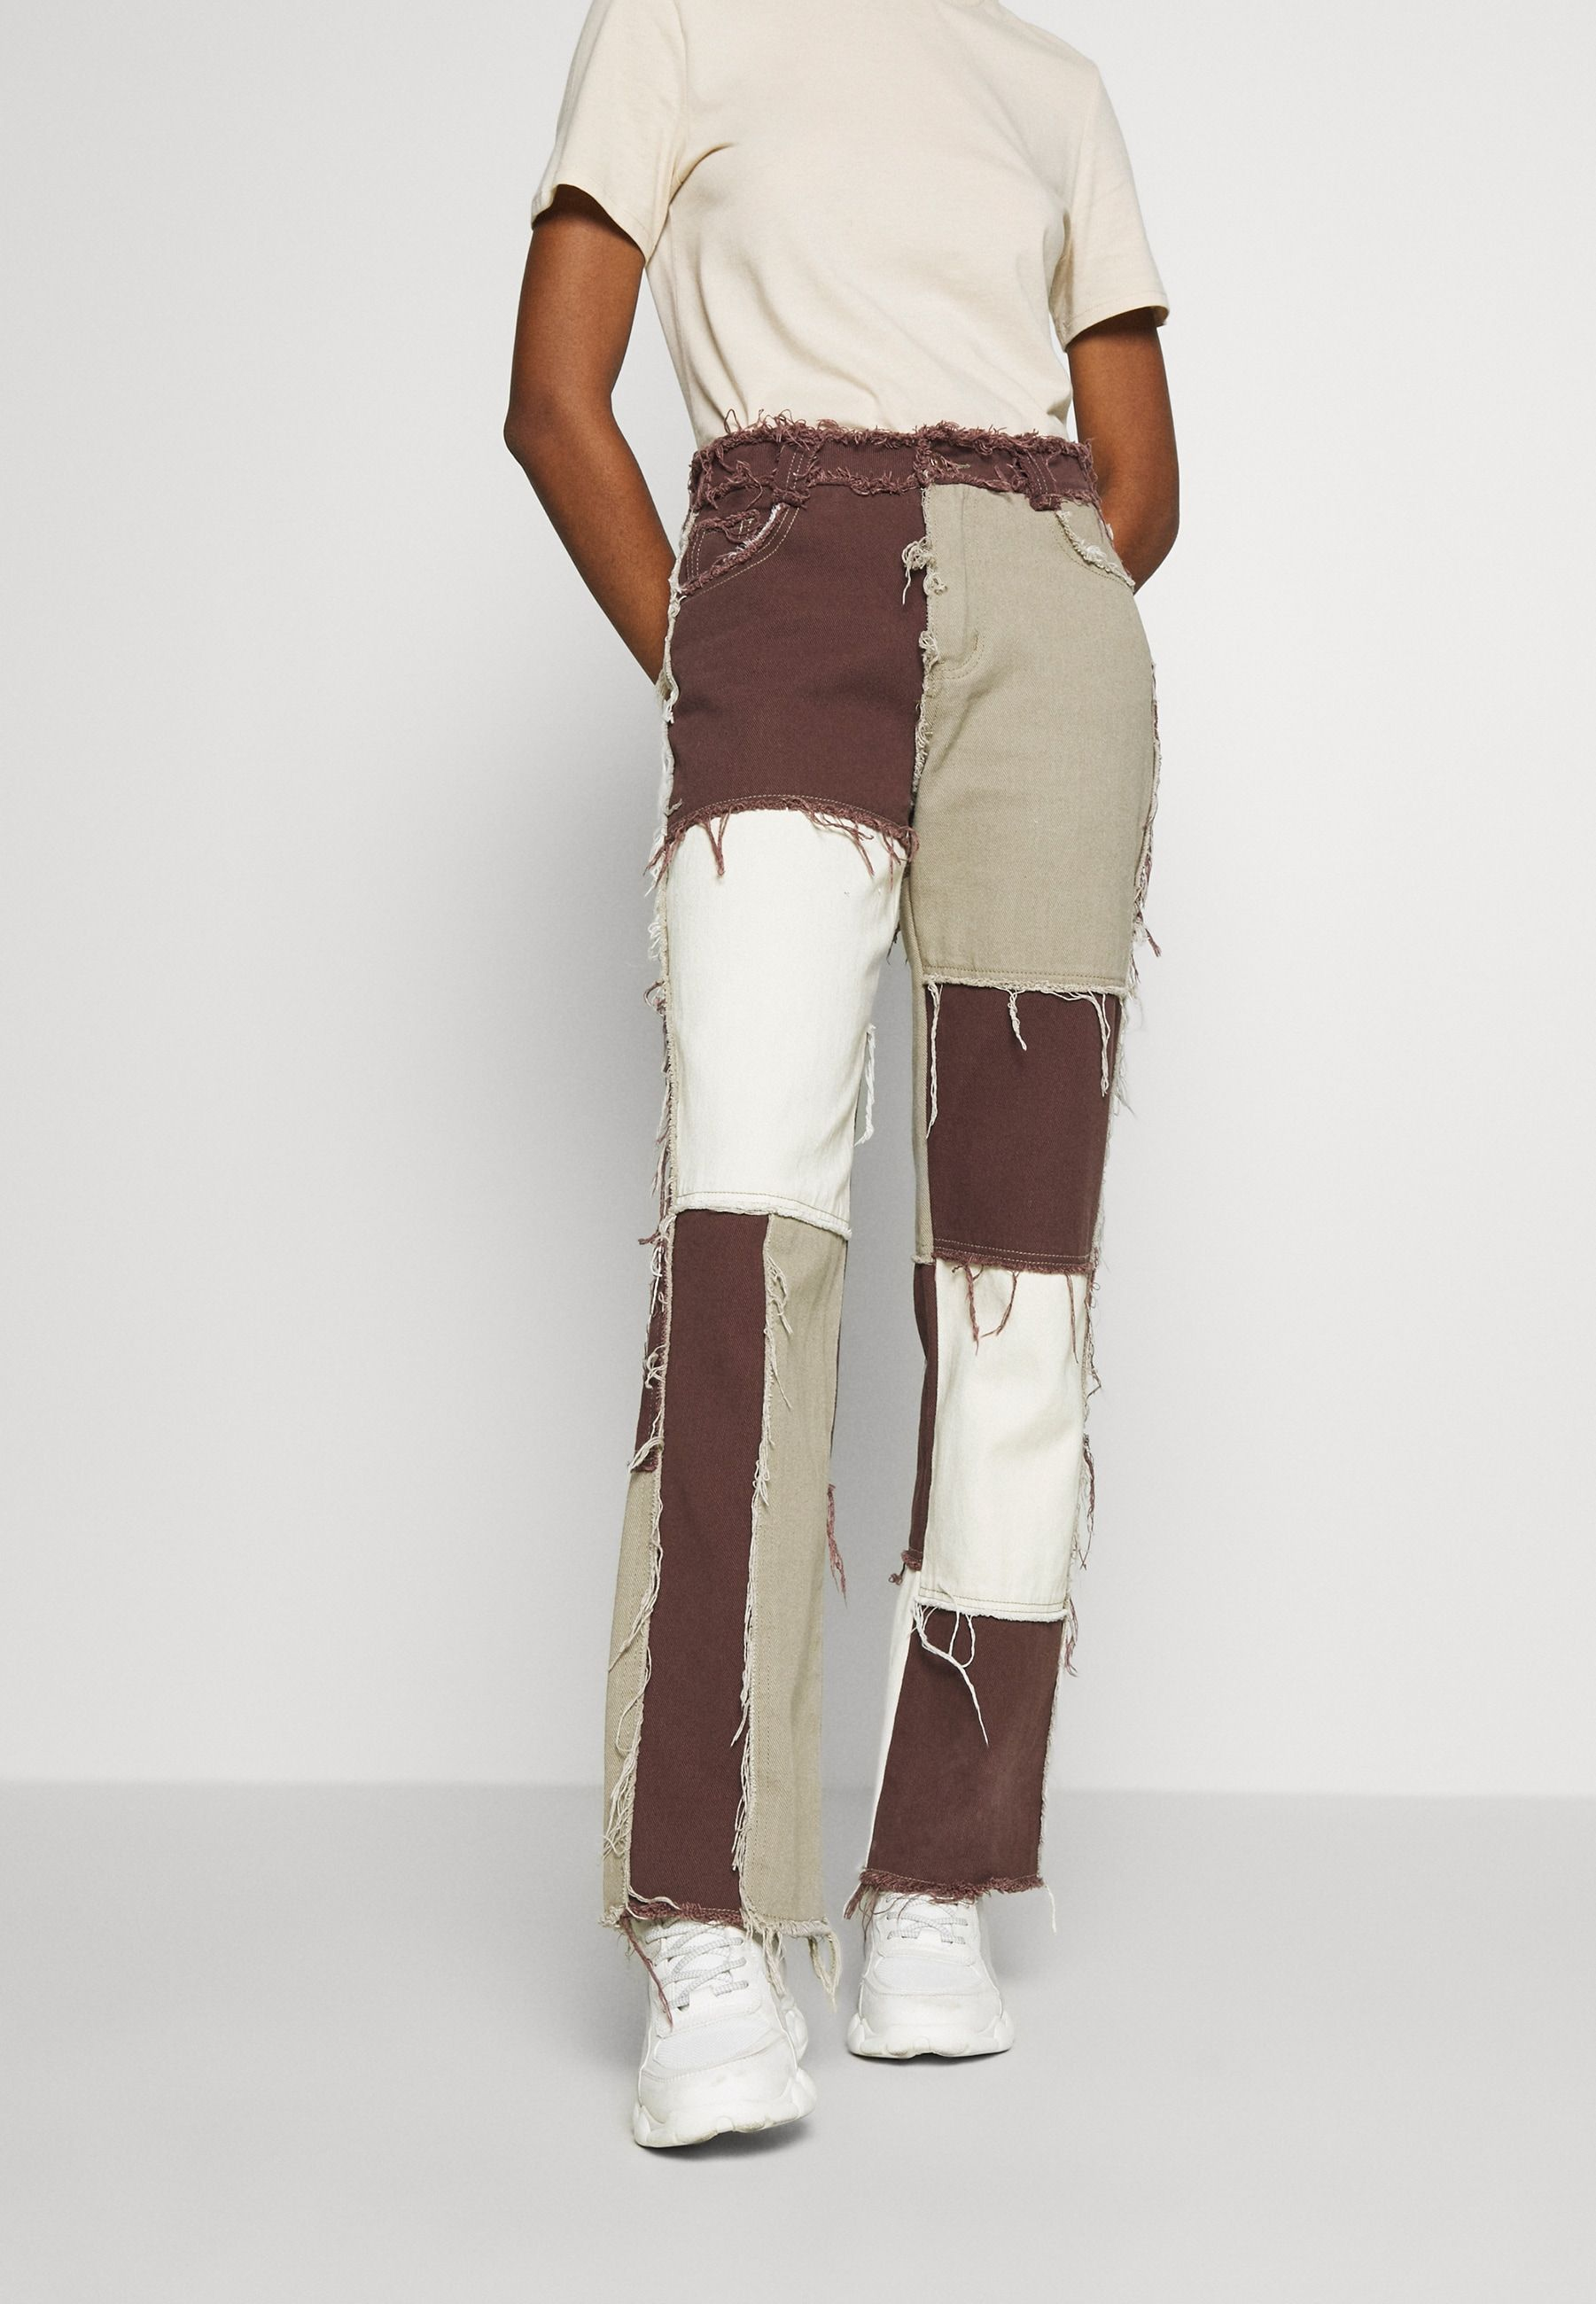 Jaded london patchwork boyfriend fit with frayed seams